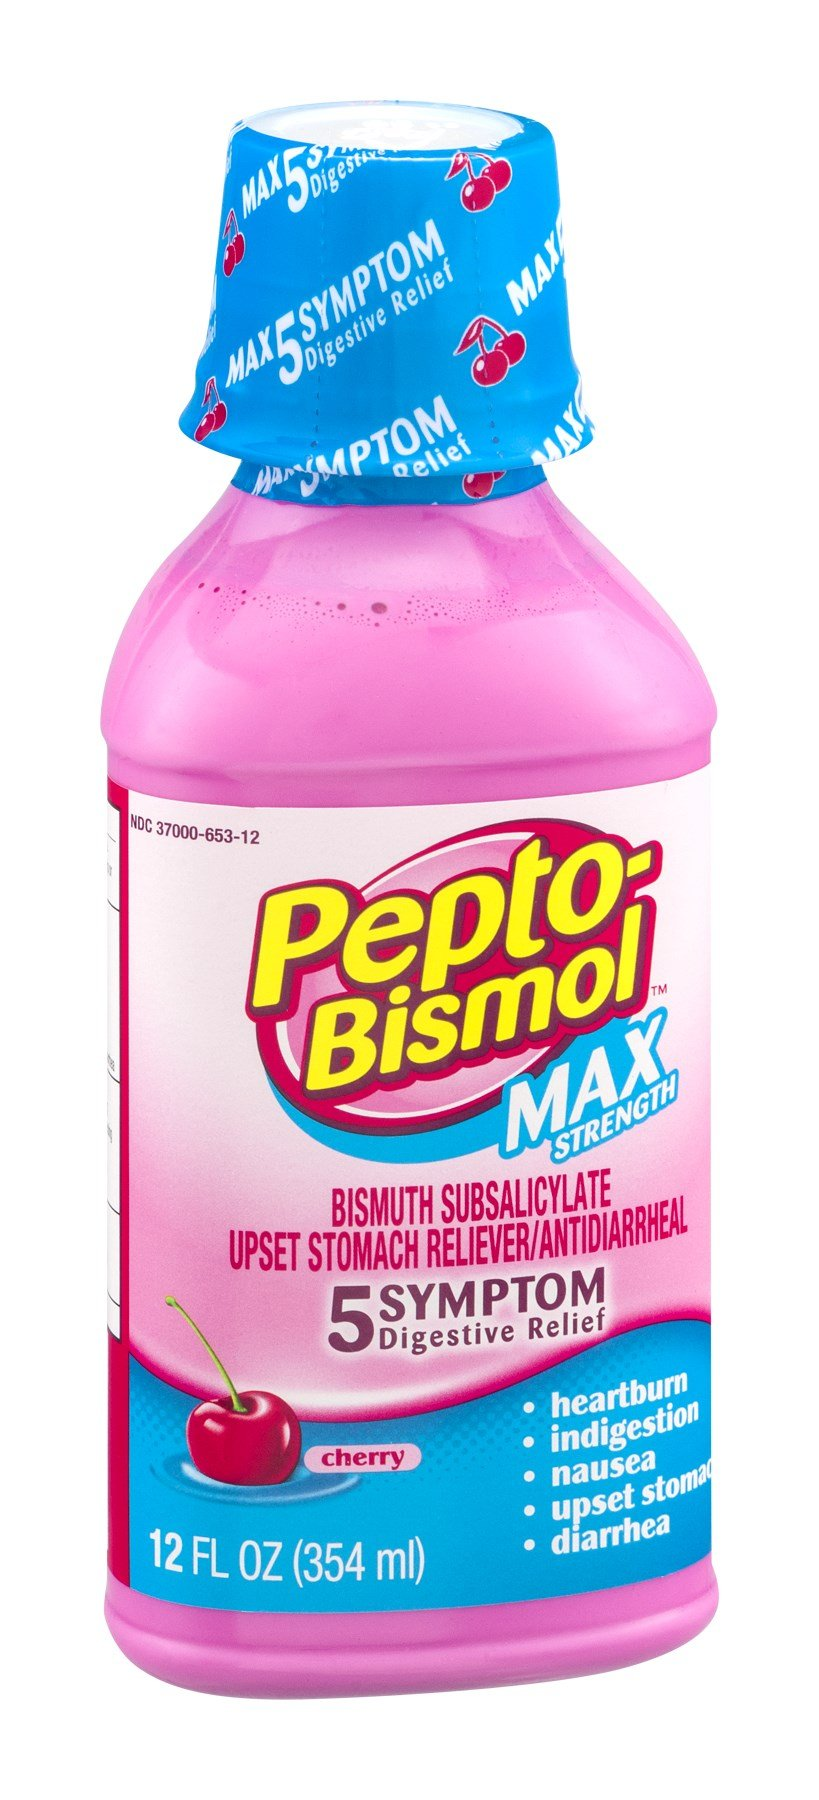 Pepto-Bismol Upset Stomach Reliever 5 Symptom Max Strength Cherry